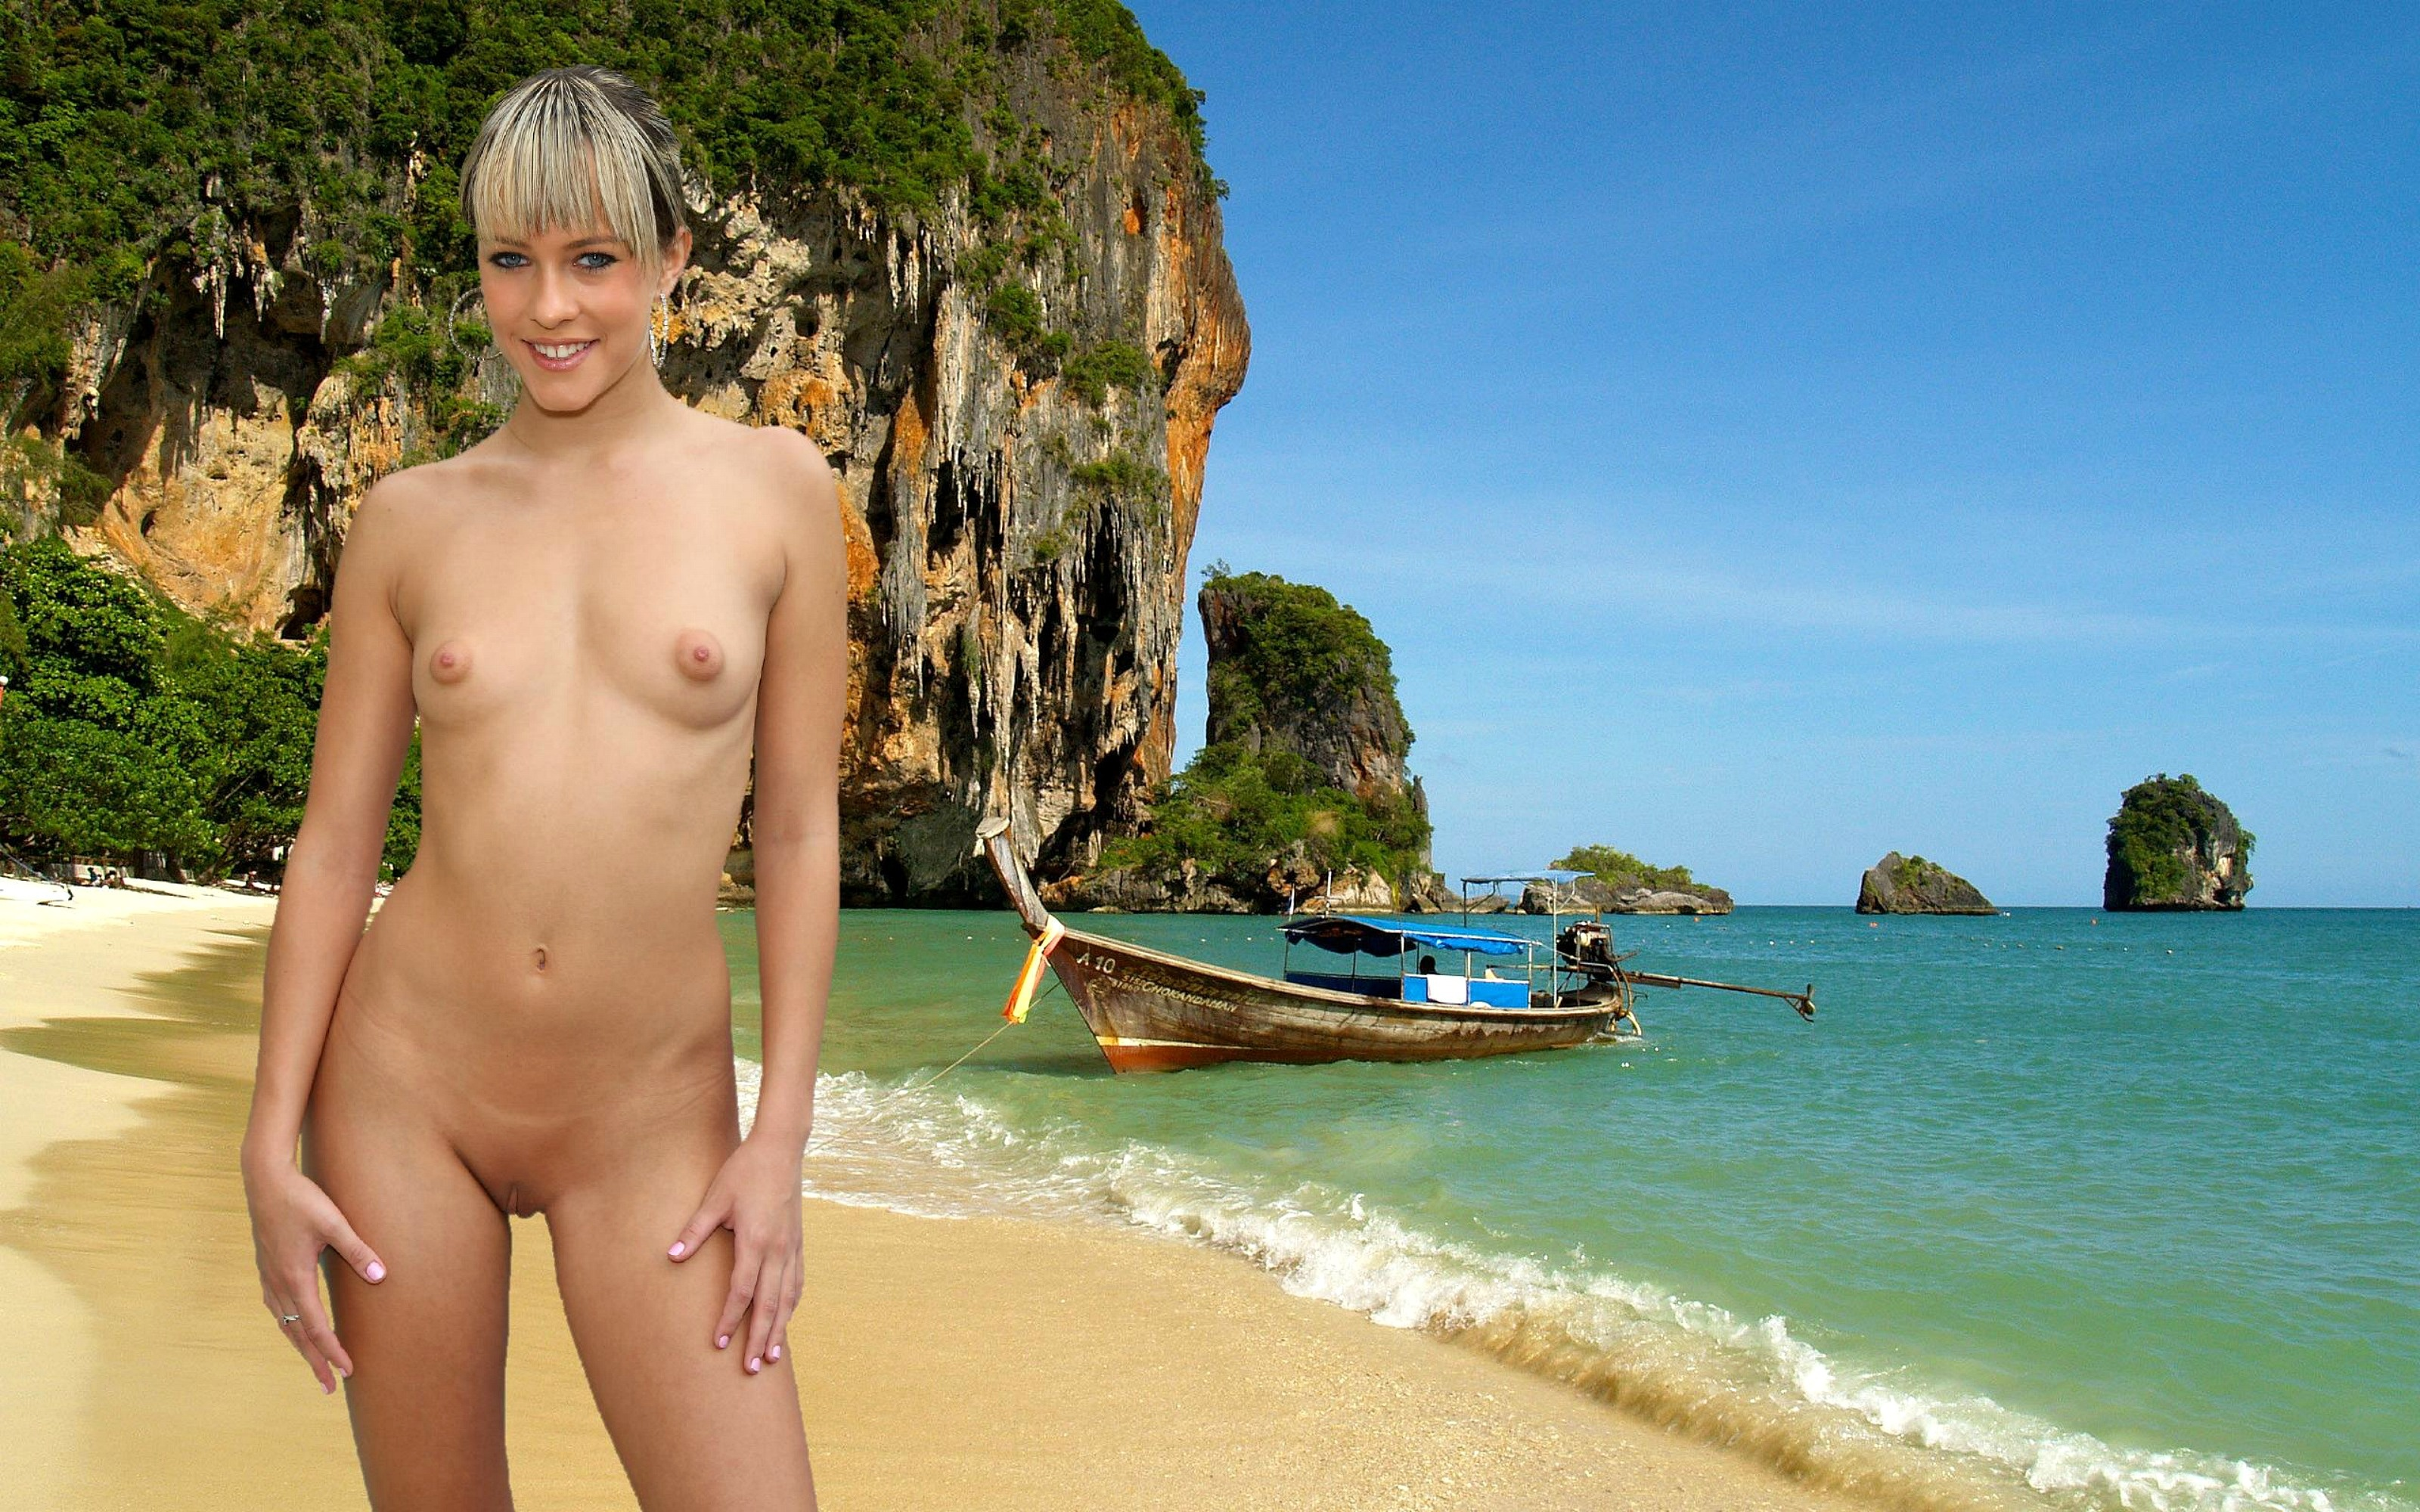 puffy nipples beach